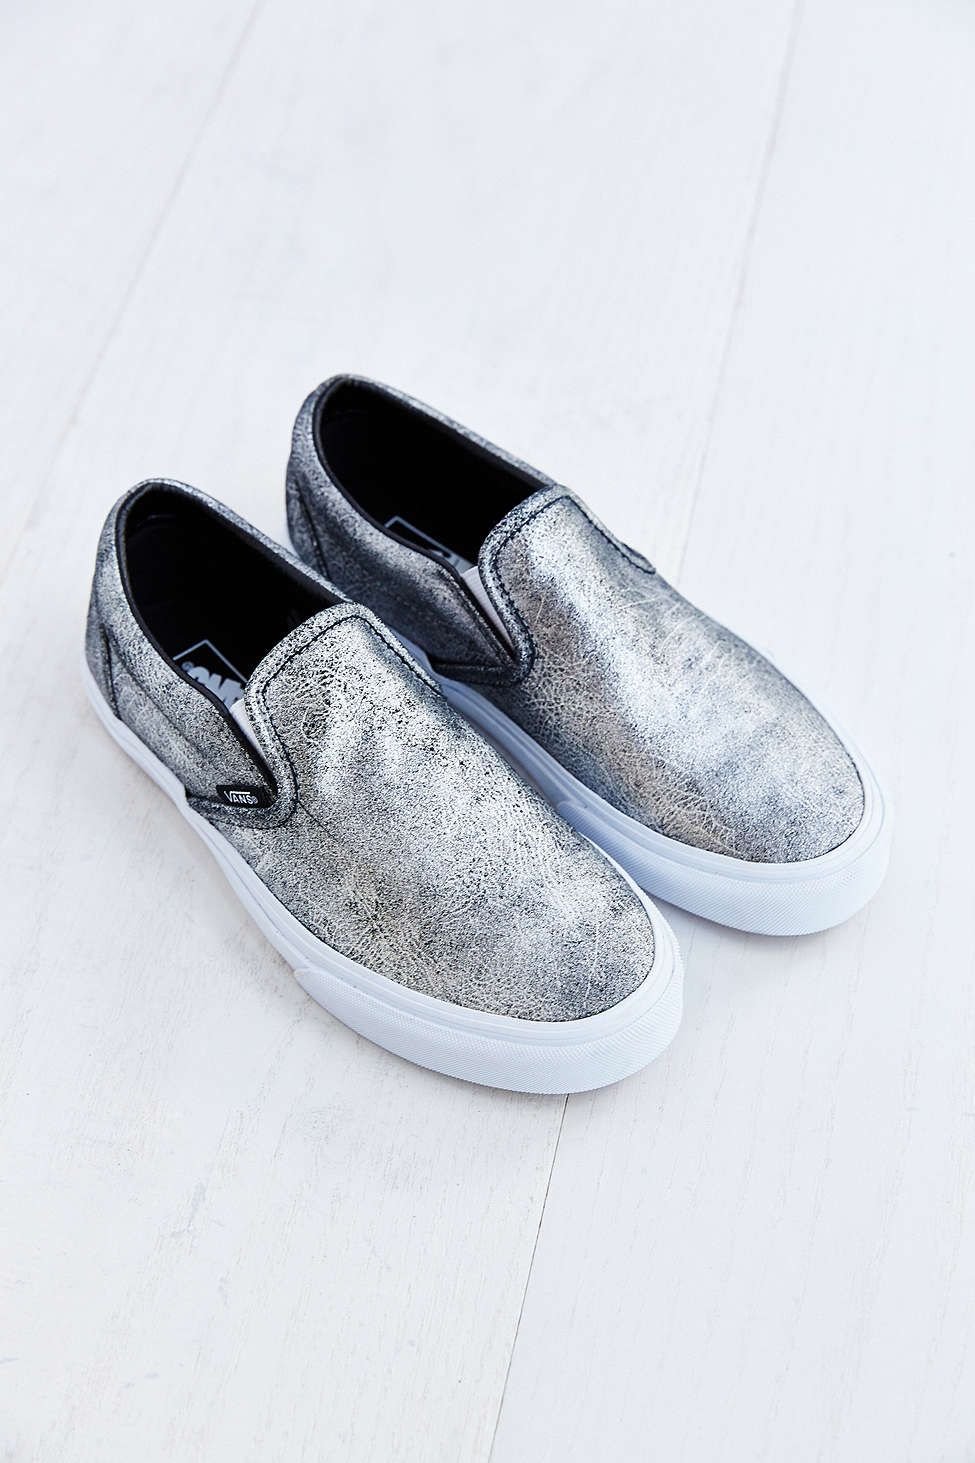 Vans Metallic Silver Womens Slip-On Sneaker - Urban Outfitters